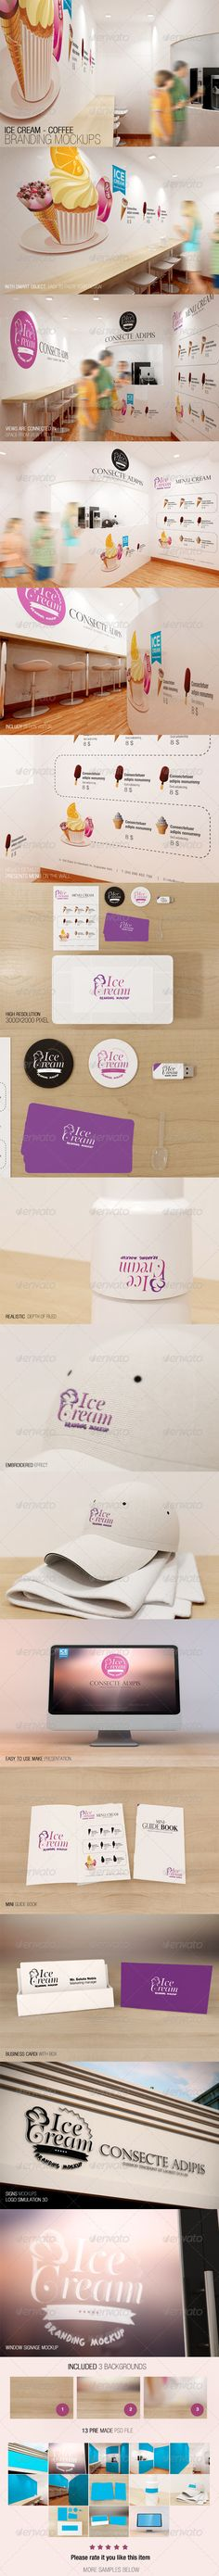 Ice Cream – Coffee Branding Mockups With smart object, easy to paste your design 13 Pre made psd file High Resolution 3000×2000 Views are cpmmected om space from view 1 to 13 Includy option visitor Highly detailed Presents menu on the wall Realistic depth of field Embroidered effect Easy to use make presentation Logo simulation 3D Included 3 backgrounds    http://graphicriver.net/item/ice-cream-coffee-branding-mockups/7228959?WT.ac=portfolio&WT.seg_1=portfolio&WT.z_author=Wutip